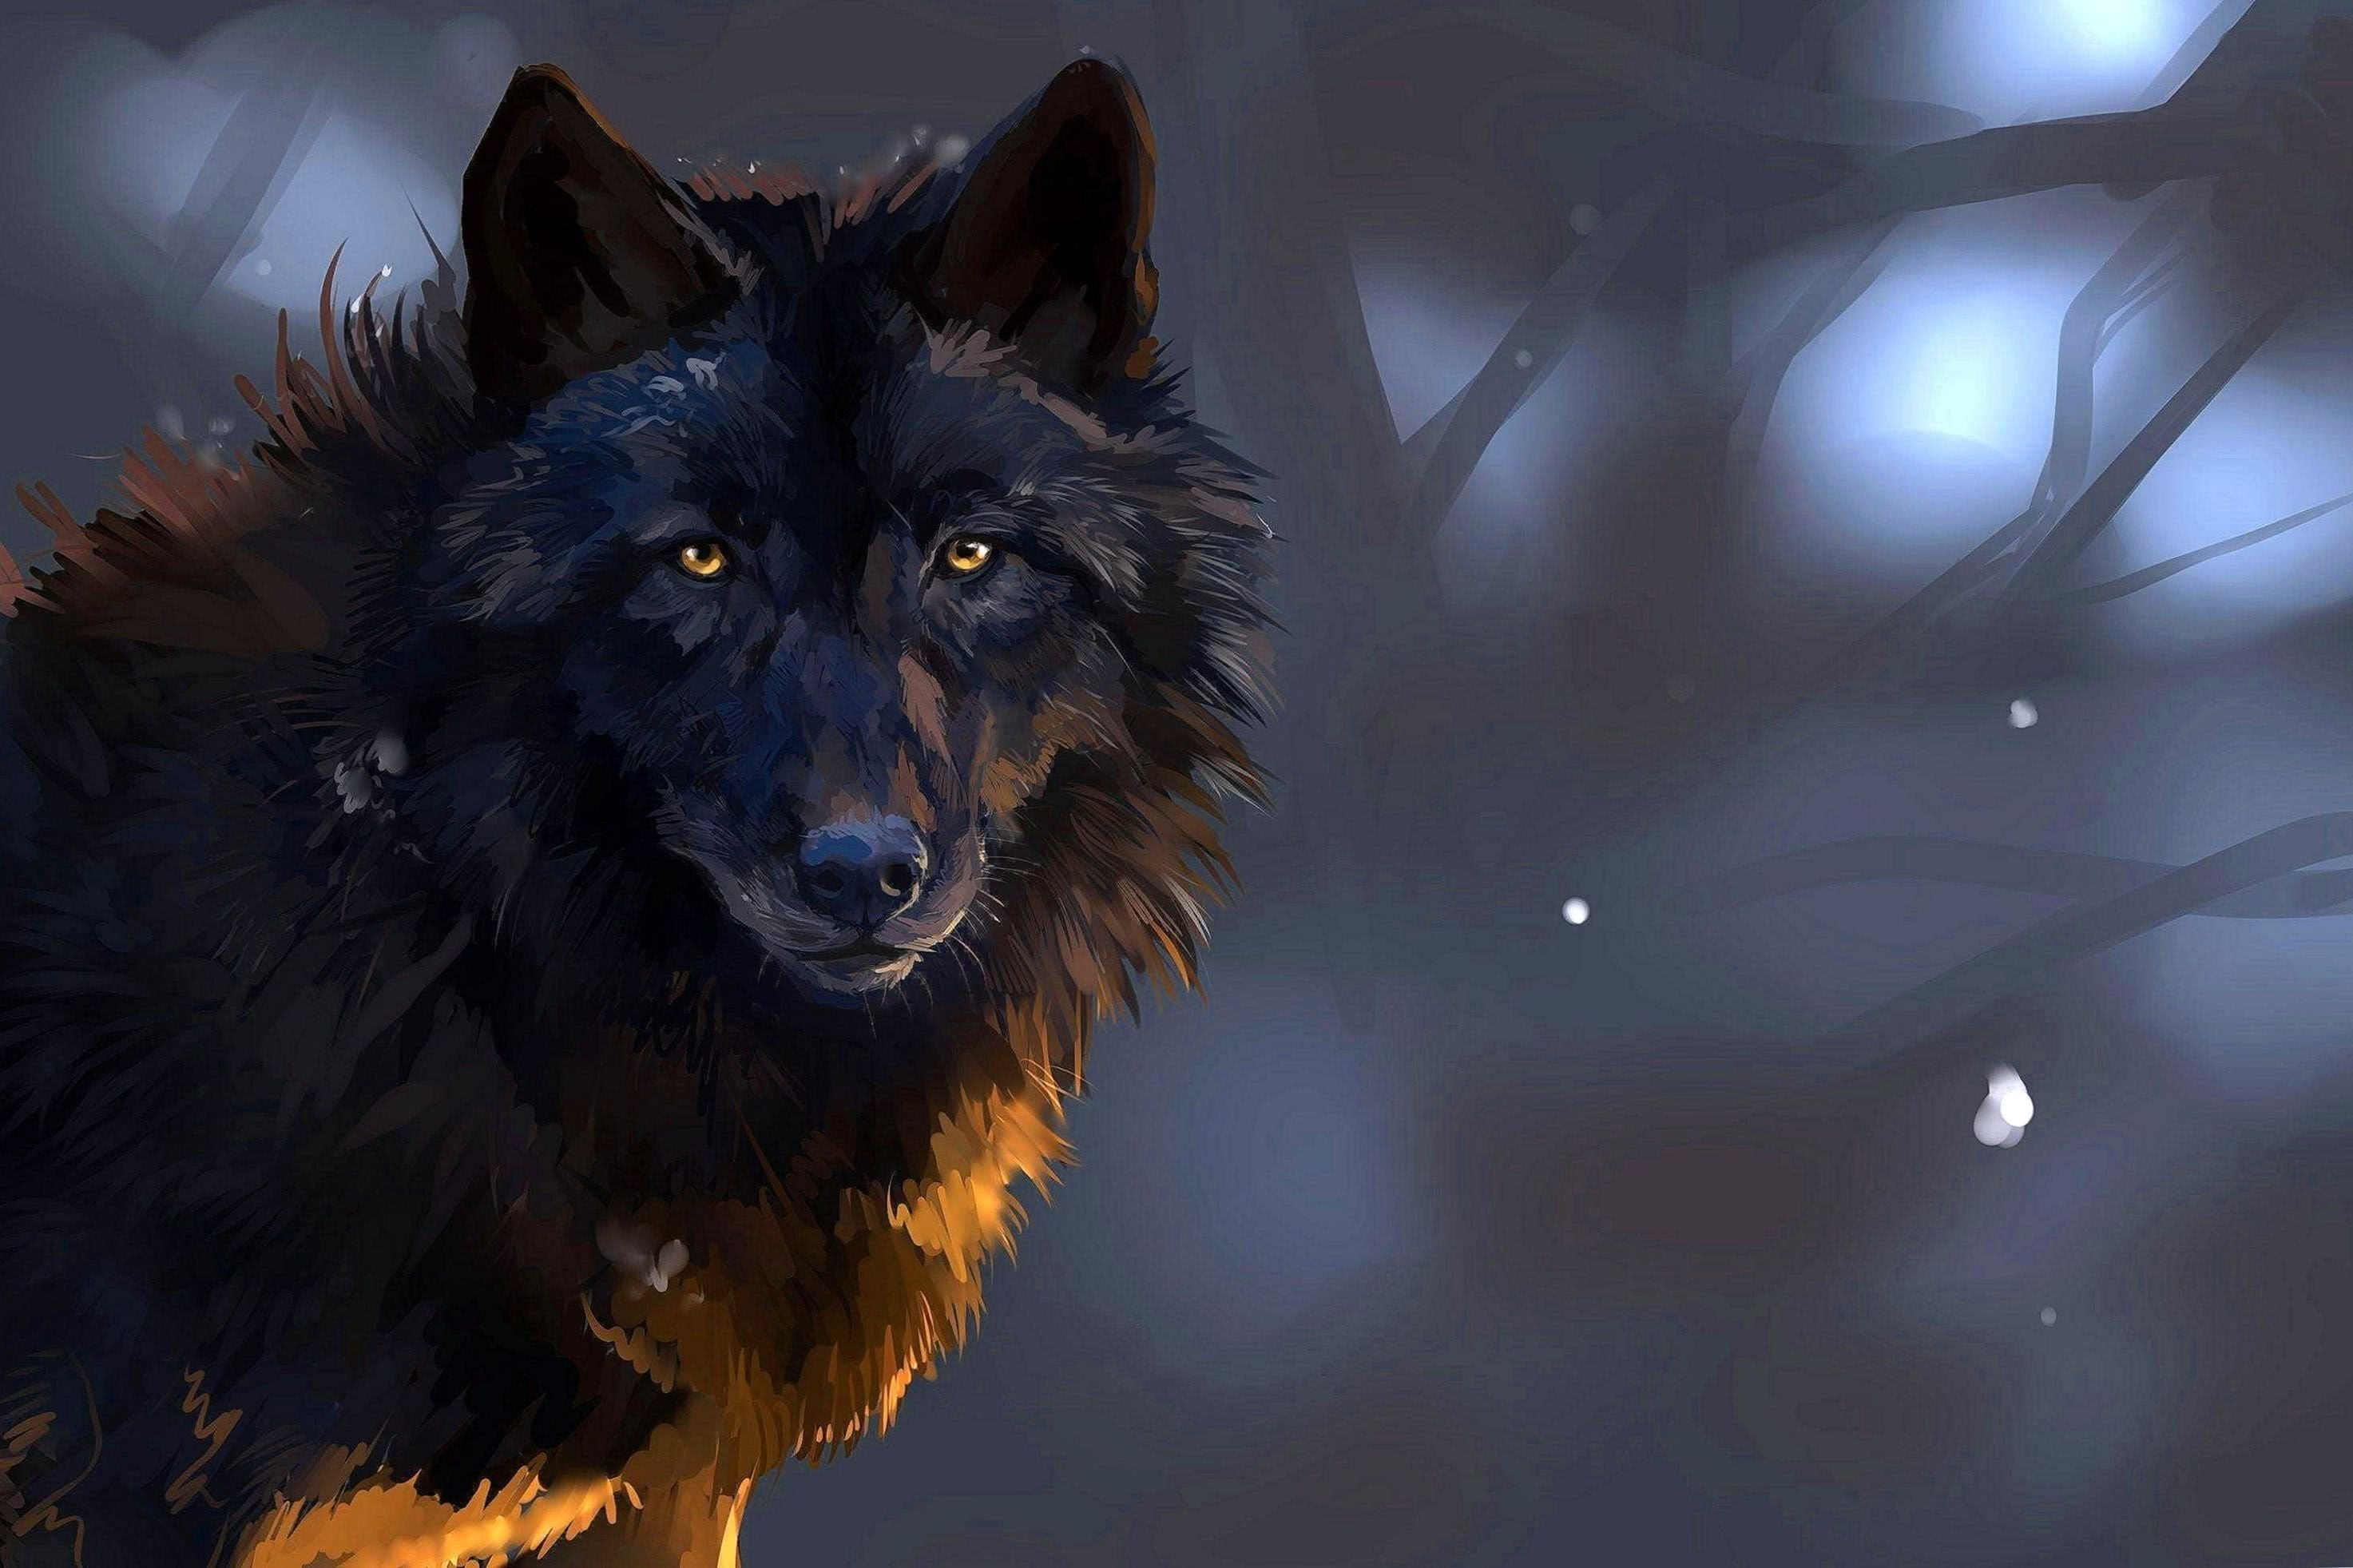 The Black Wolf Wallpaper